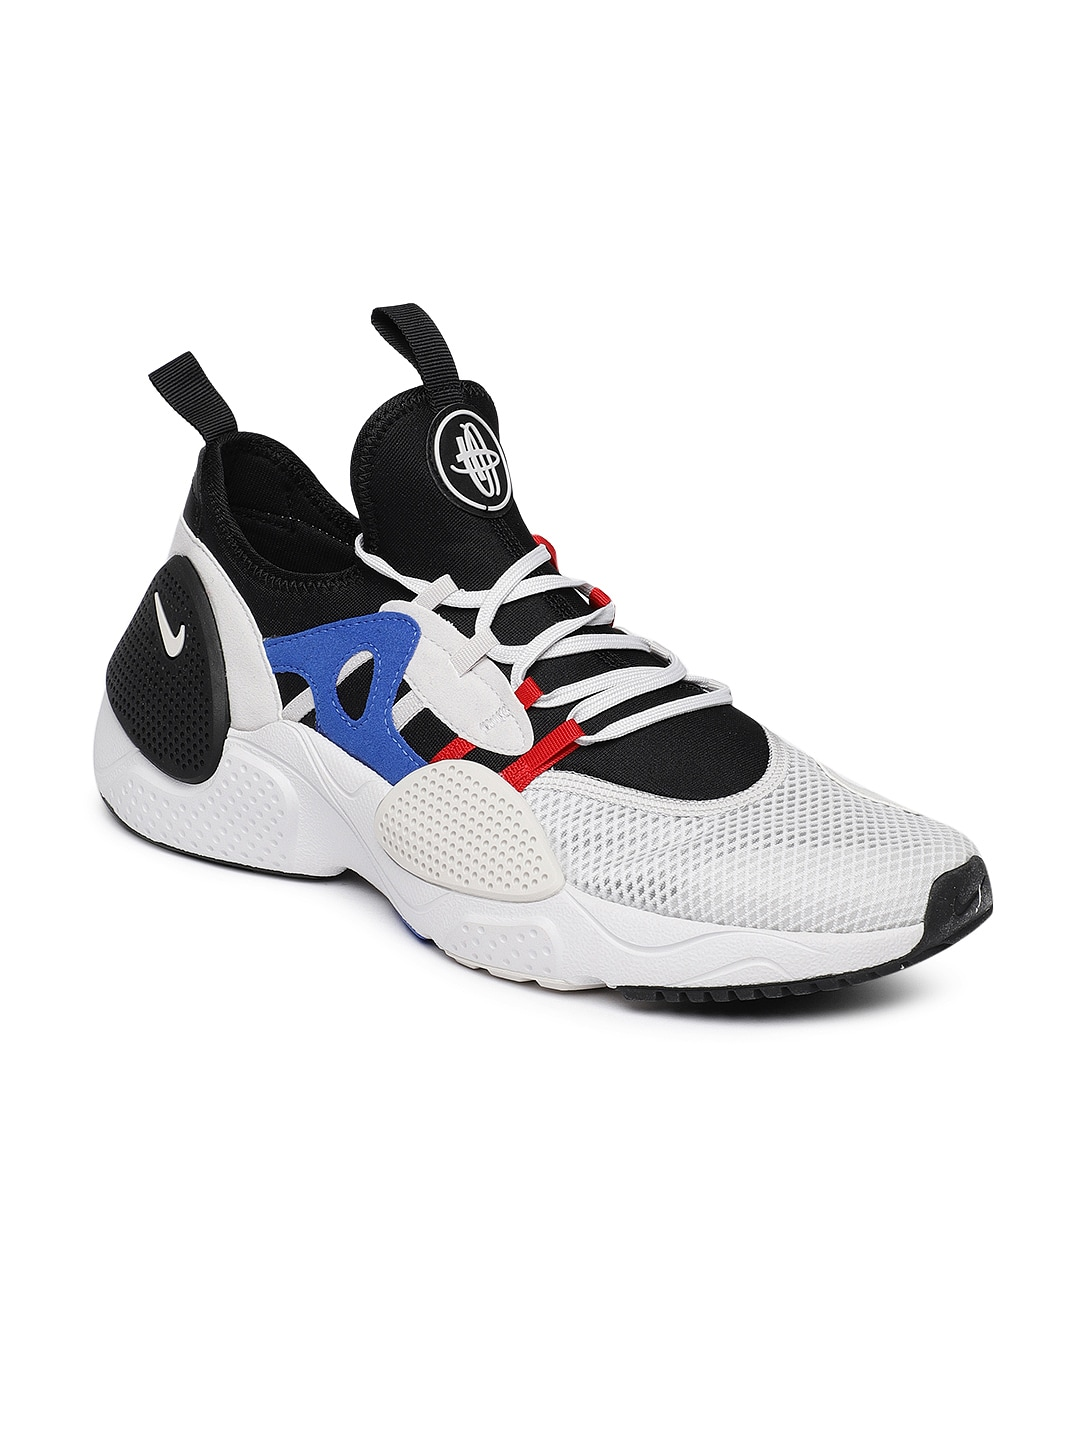 on sale e9278 16132 Nike Casual Shoes  Buy Nike Casual Shoes for Men  Women Online in India